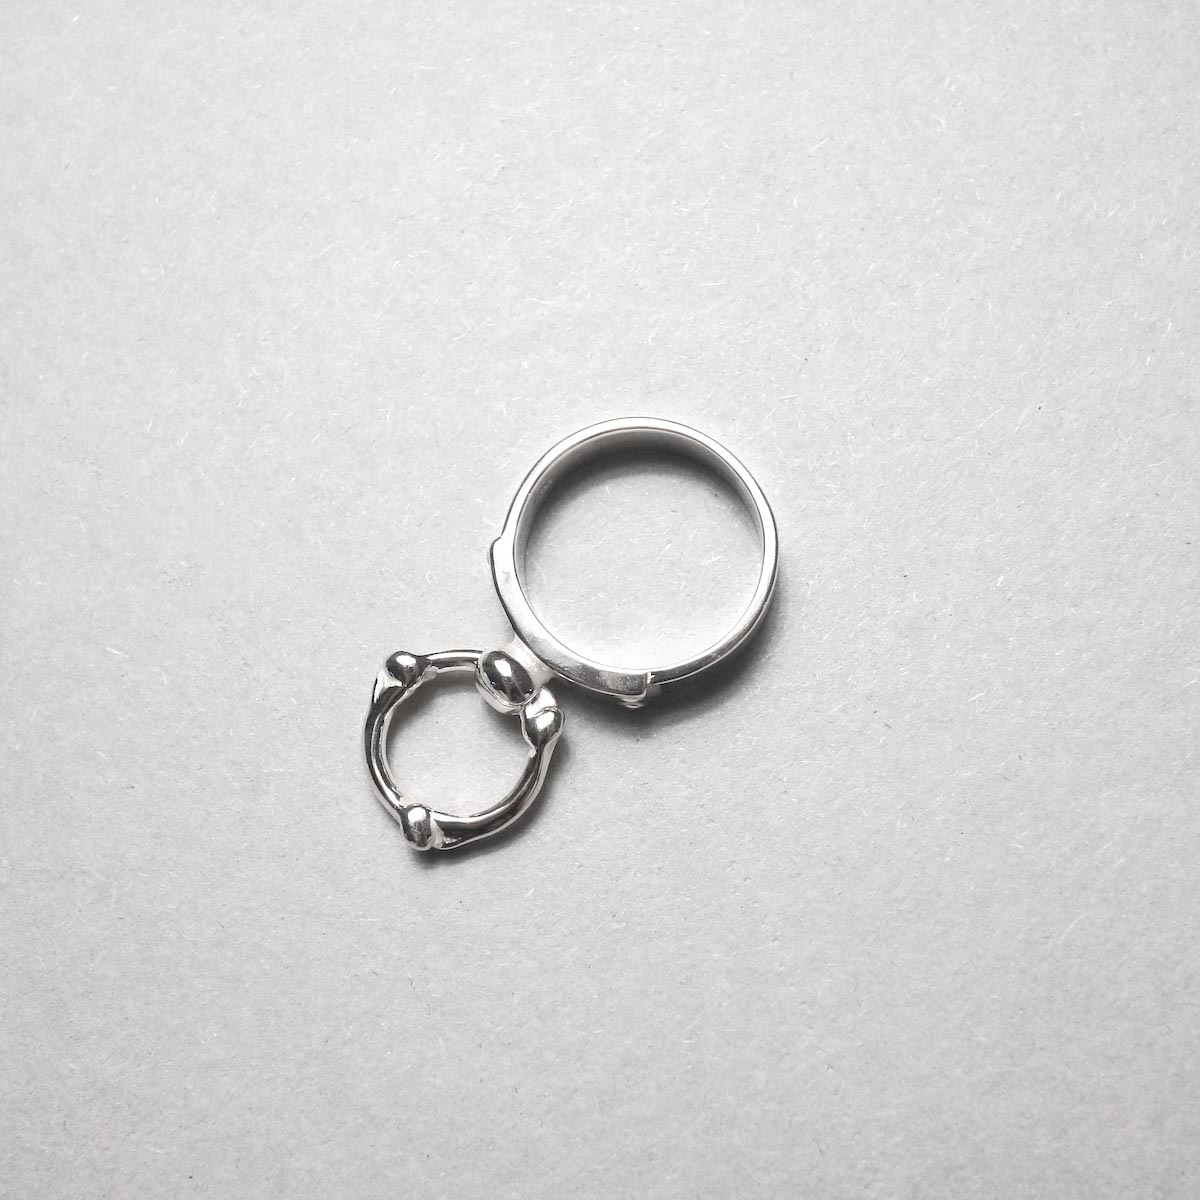 The Soloist / sa.0041AW20 single bone shaped ring narrow ring.上から